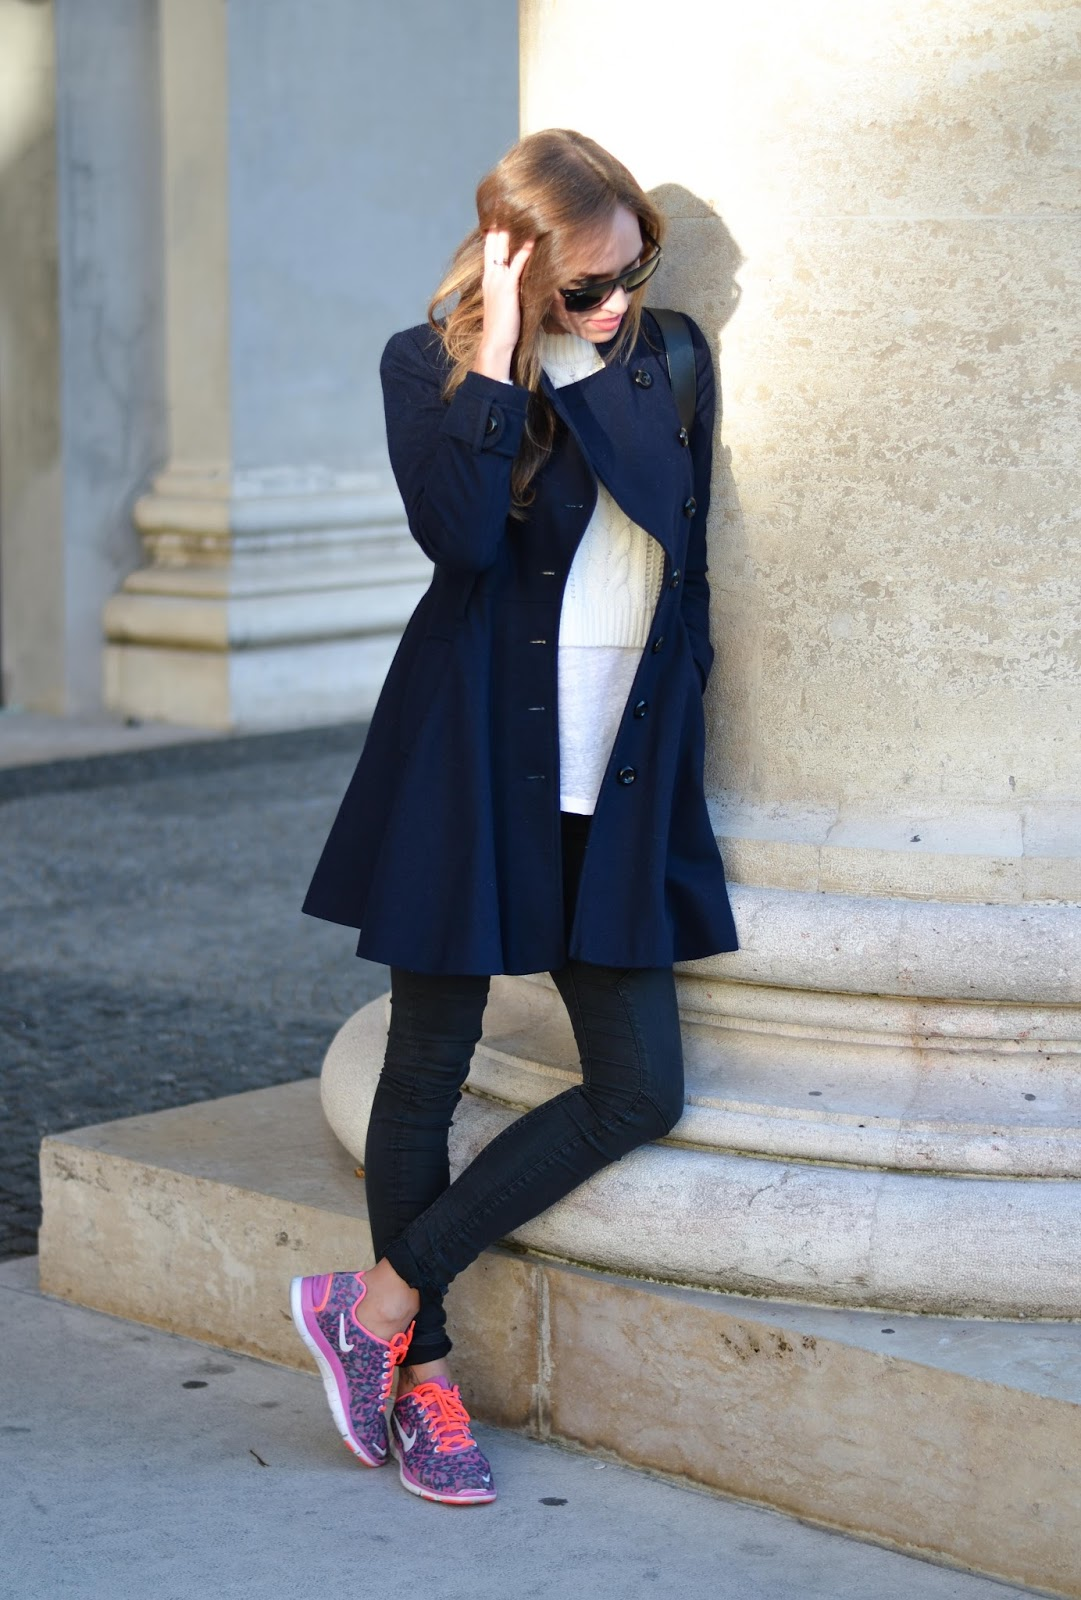 kristjaana mere winter outfit dark blue wool coat white t shirt black jeans pink trainers